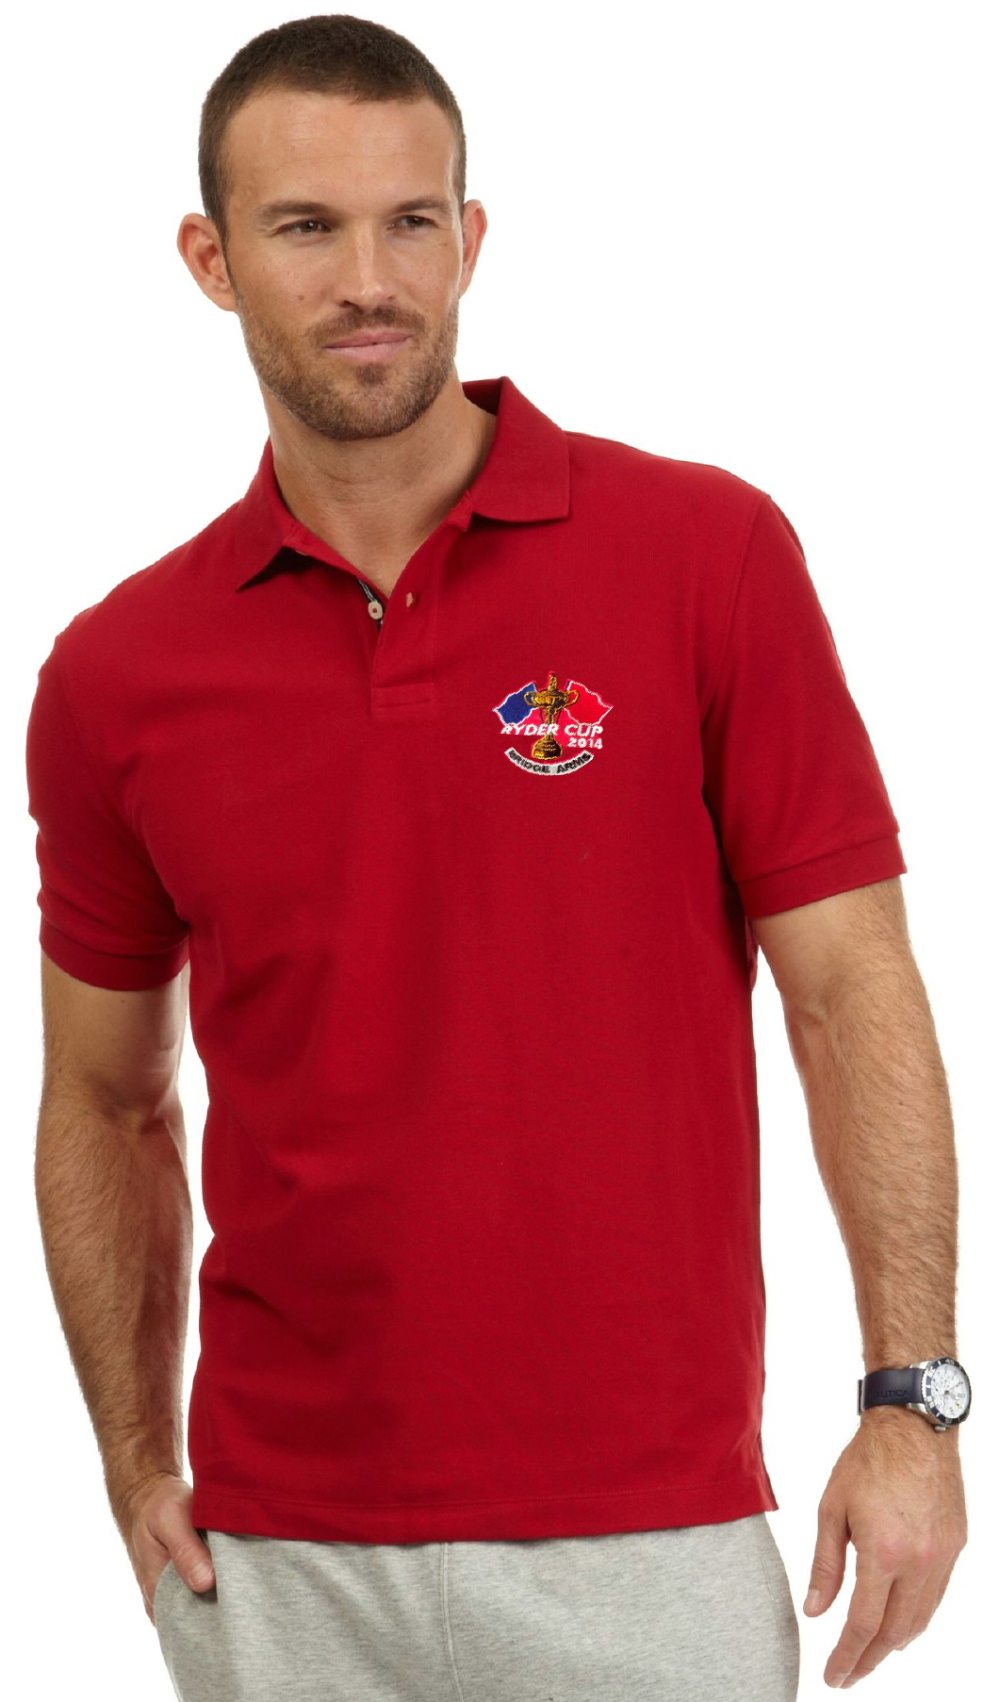 Club embroidered polo shirts and baseball caps and screen-printed football shirts from DG Embroidery of Stranraer like this red polo shirt with a Ryder Club 2014 logo